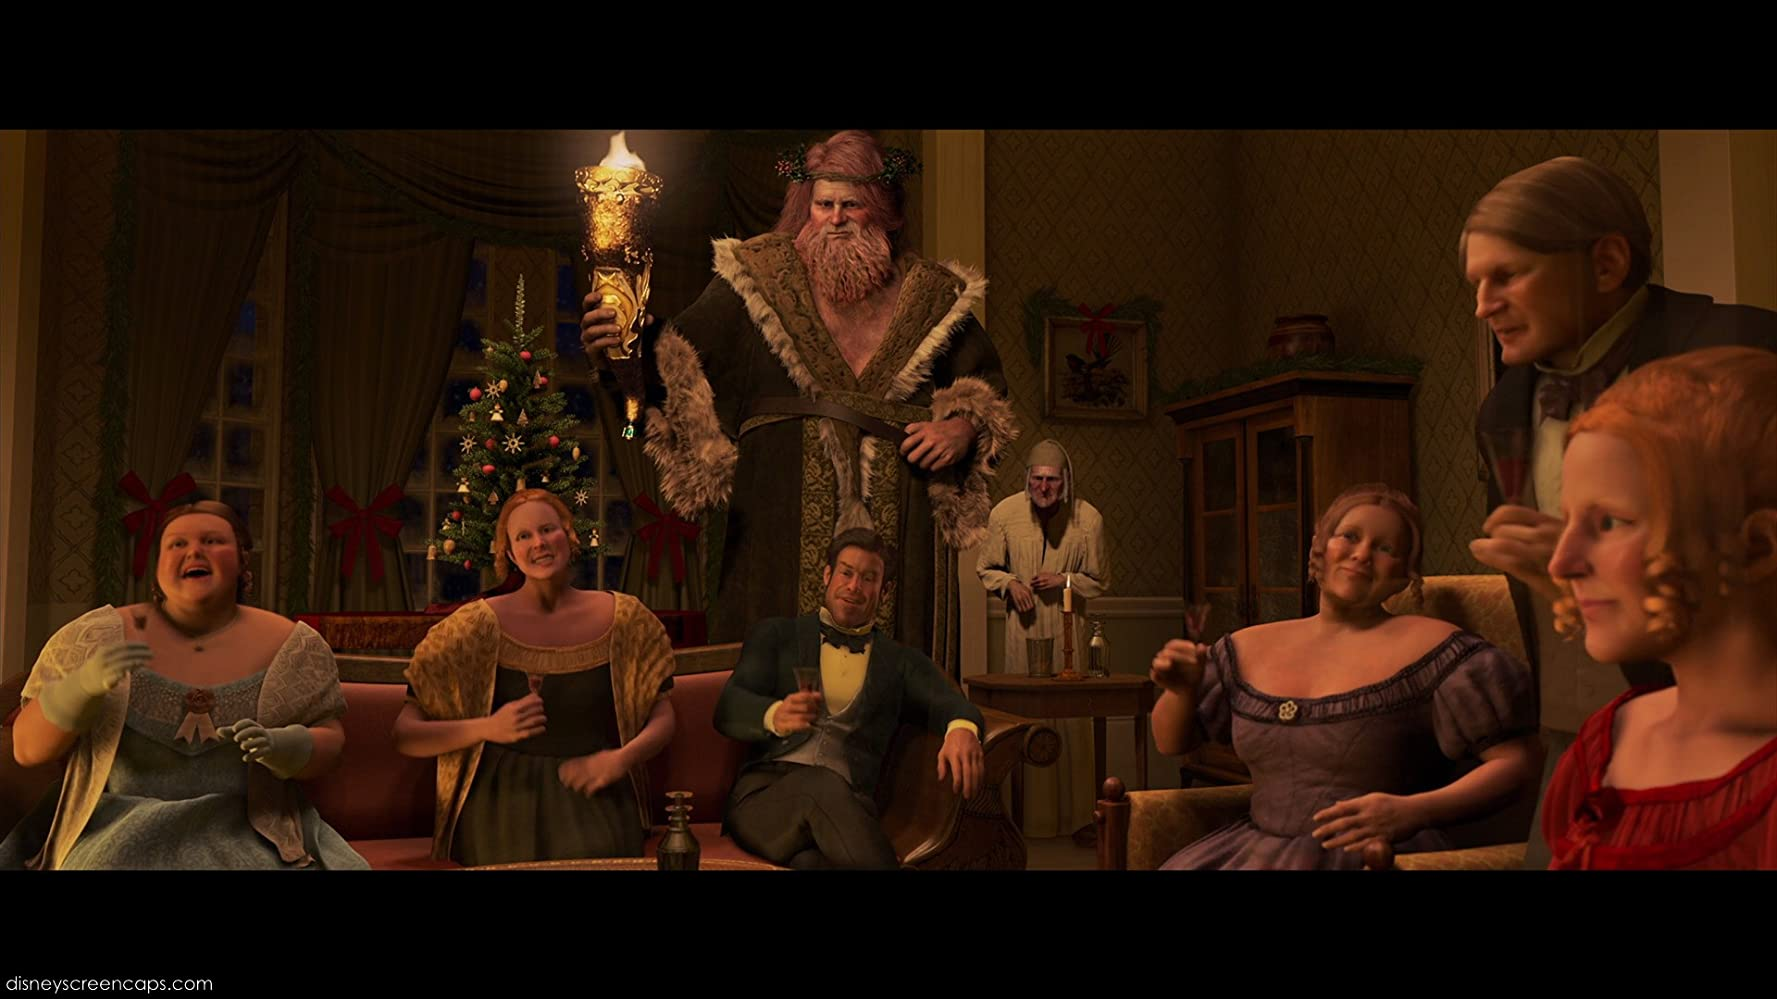 movie plot an animated retelling of charles dickens classic novel about a victorian era miser taken on a journey of self redemption courtesy of several - A Christmas Carol 2009 Cast